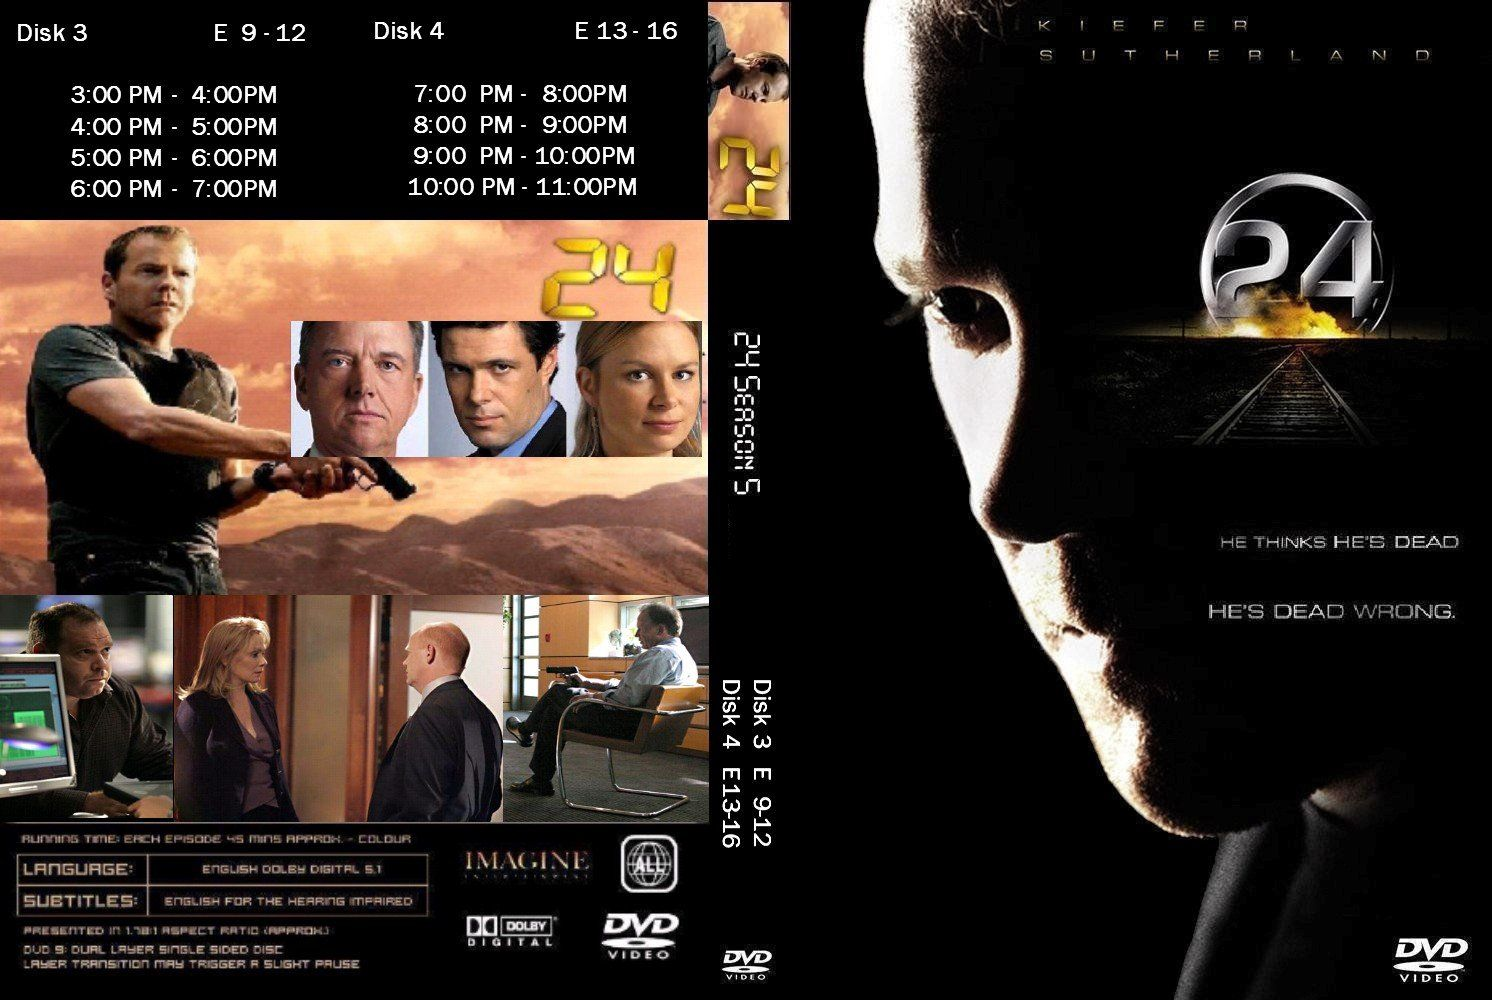 24 Season 5 Disk 3 and 4 DVD US CUSTOM | DVD Covers | Cover